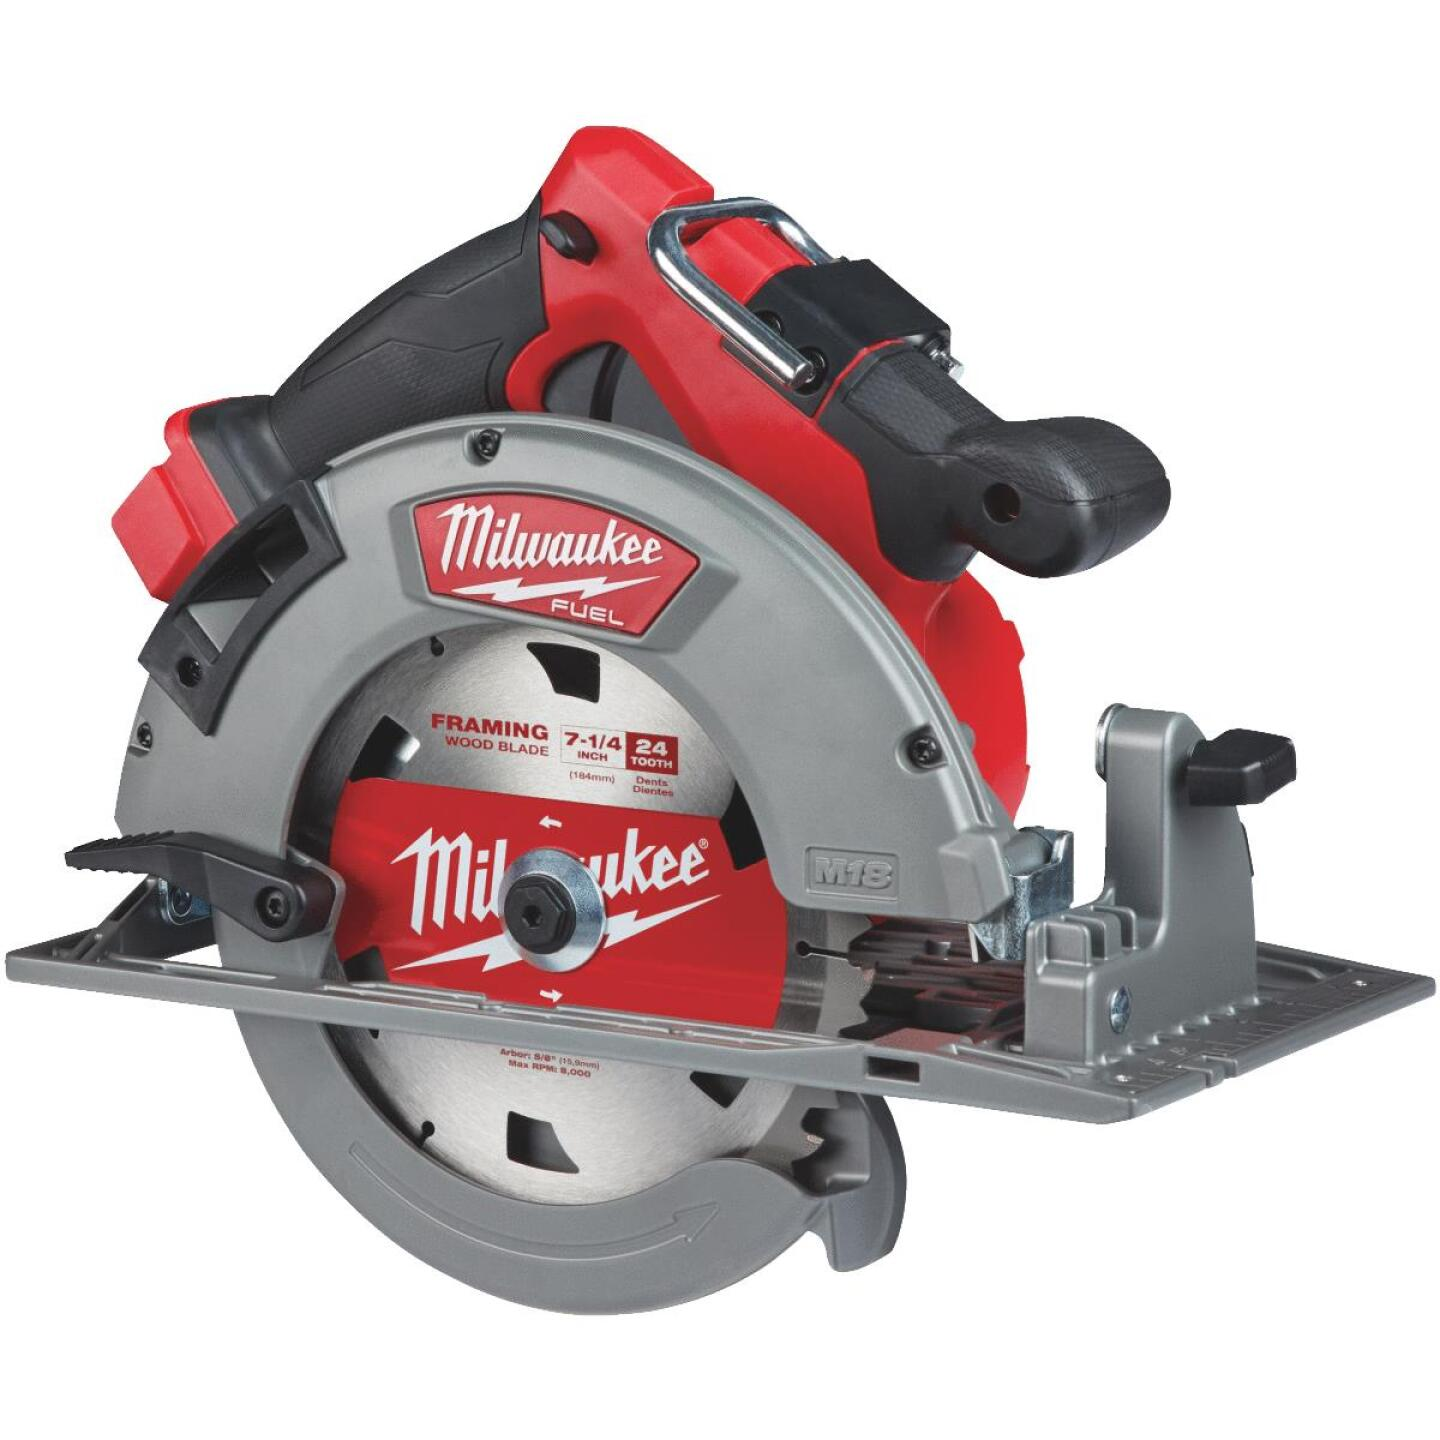 Milwaukee M18 FUEL 18 Volt Lithium-Ion Brushless 7-1/4 in. Cordless Circular Saw (Bare Tool) Image 1